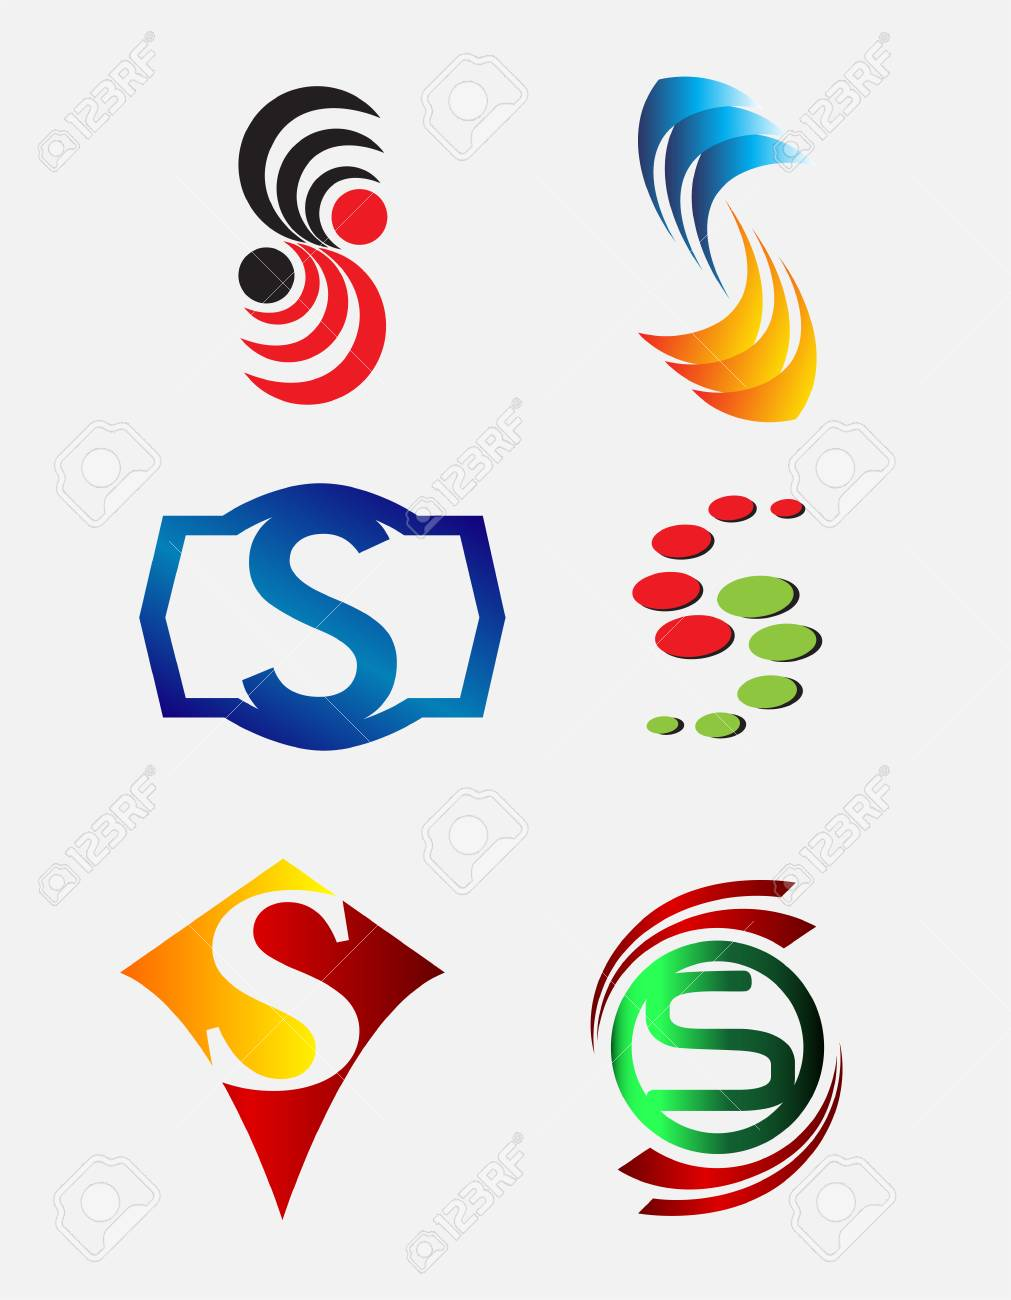 Set Of Decorative Letter S Icons Logo And Elements Royalty Free